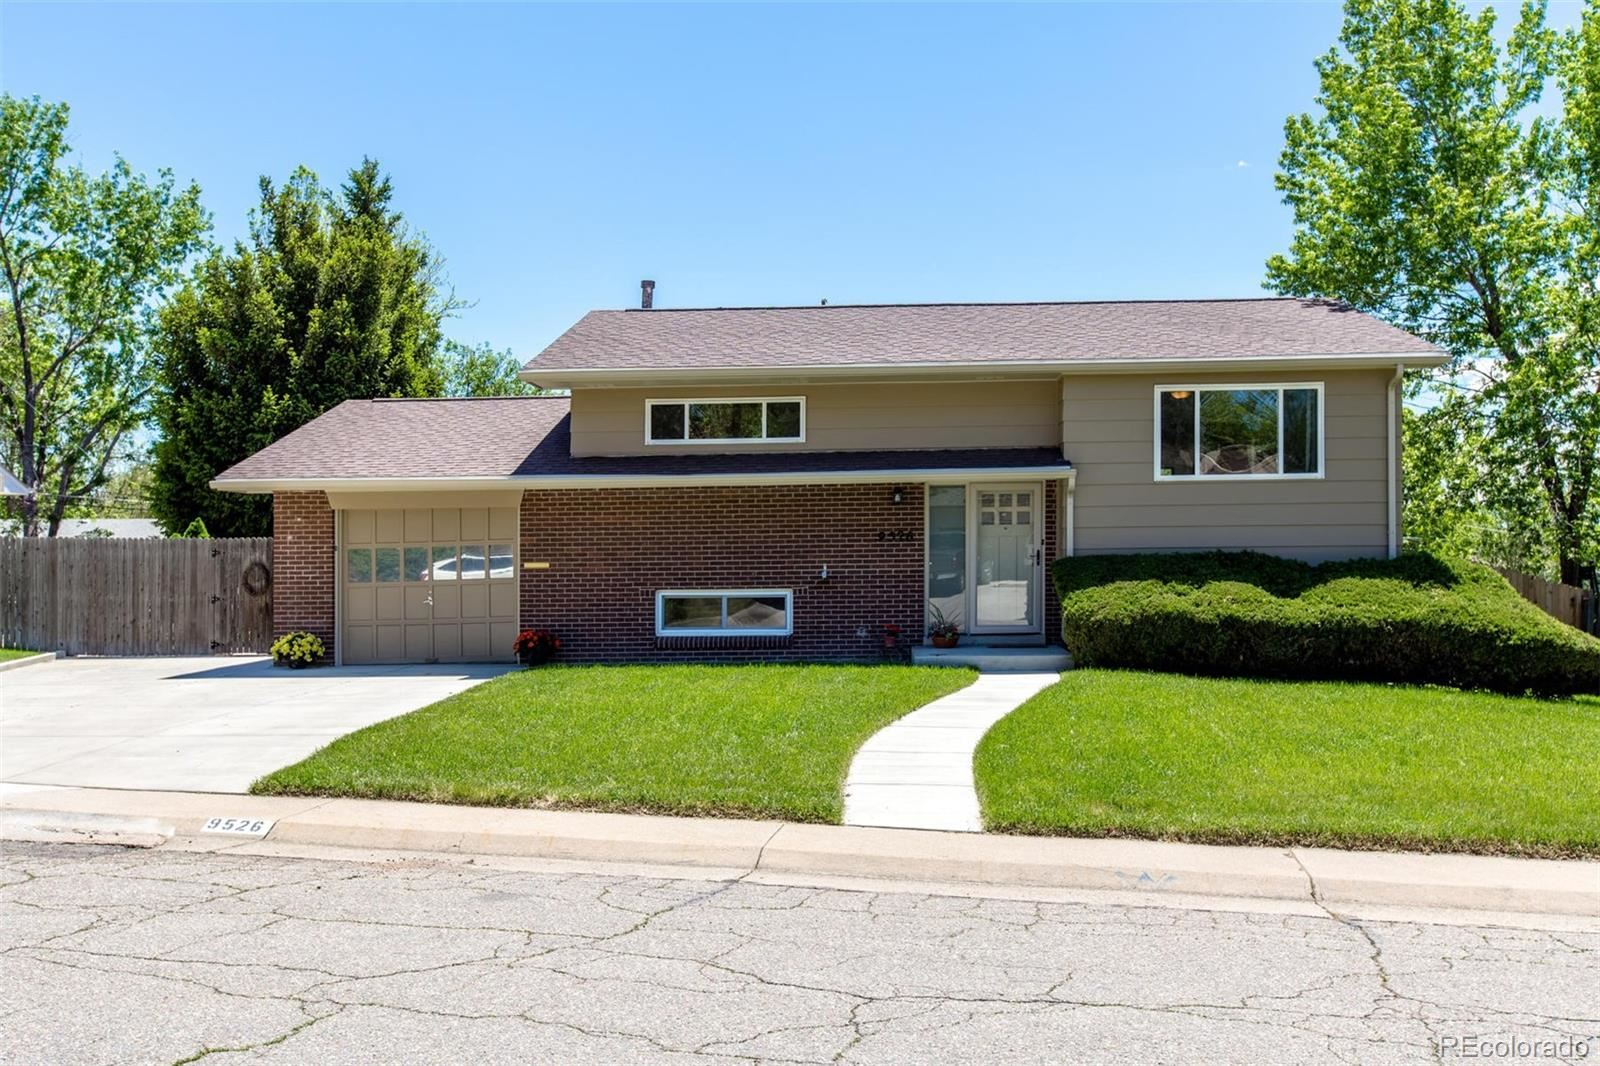 9526 W 64th Way, Arvada, CO 80004 - #: 3447351